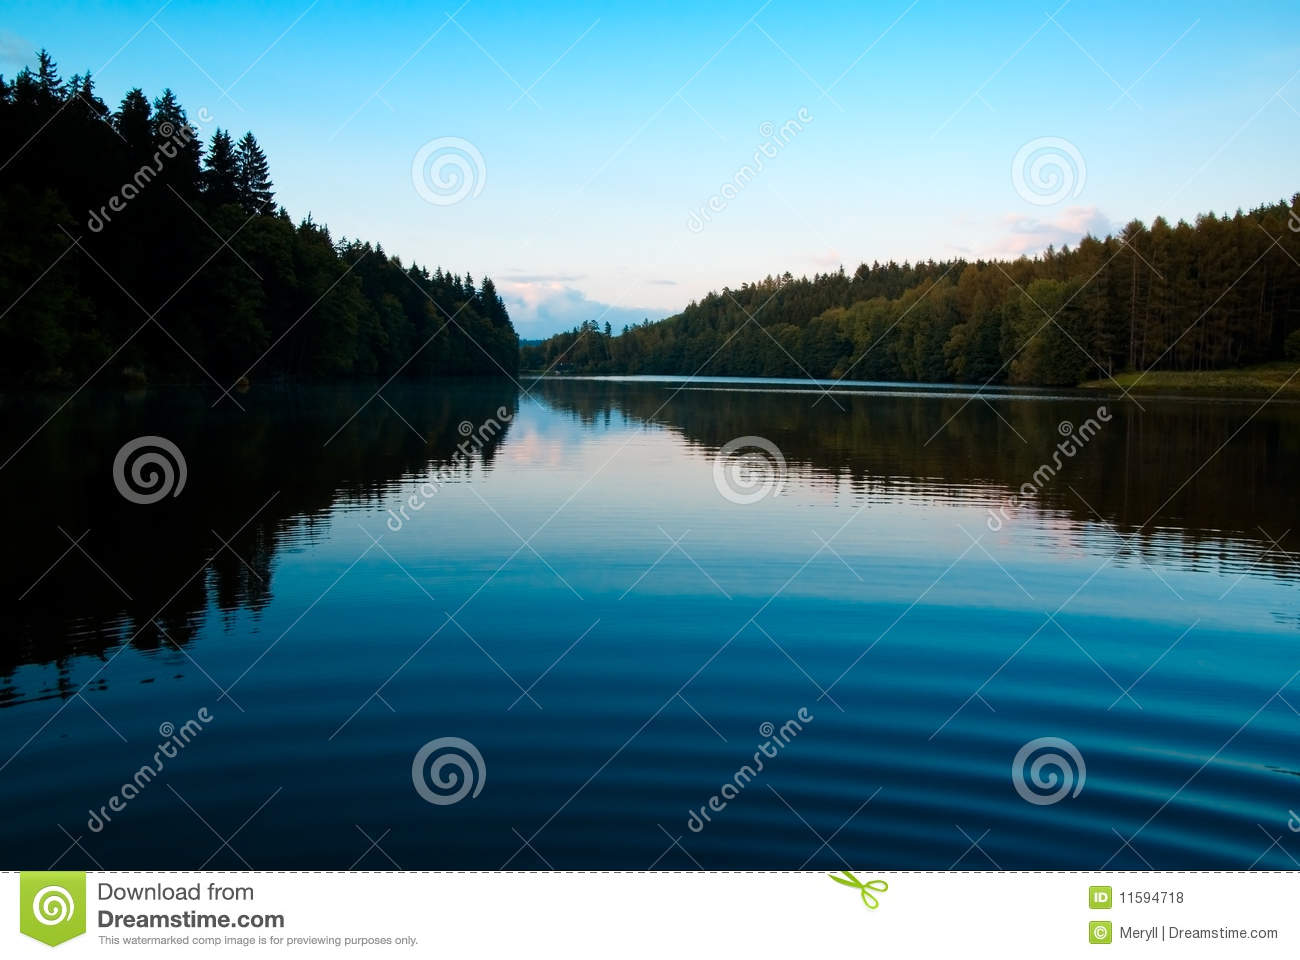 Nature Images 2mb: Nature Lake Background Stock Photo. Image Of Outdoors